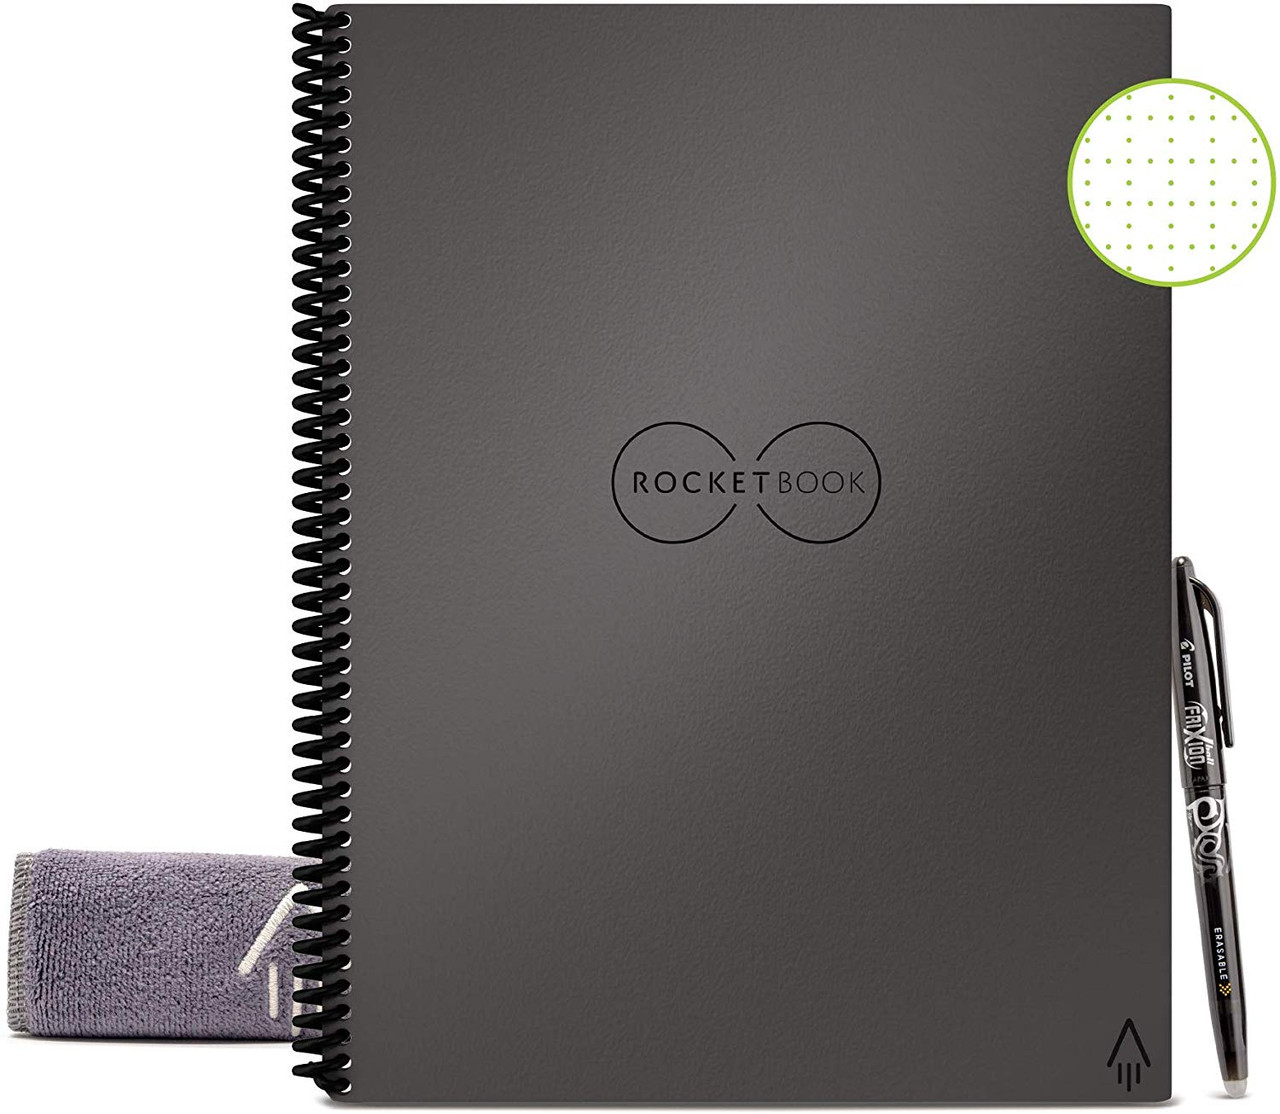 Rocketbook EVR-L-K-CIG Everlast Smart Reusable Notebook with Pen and Microfiber Cloth, Letter Size, Space Gray